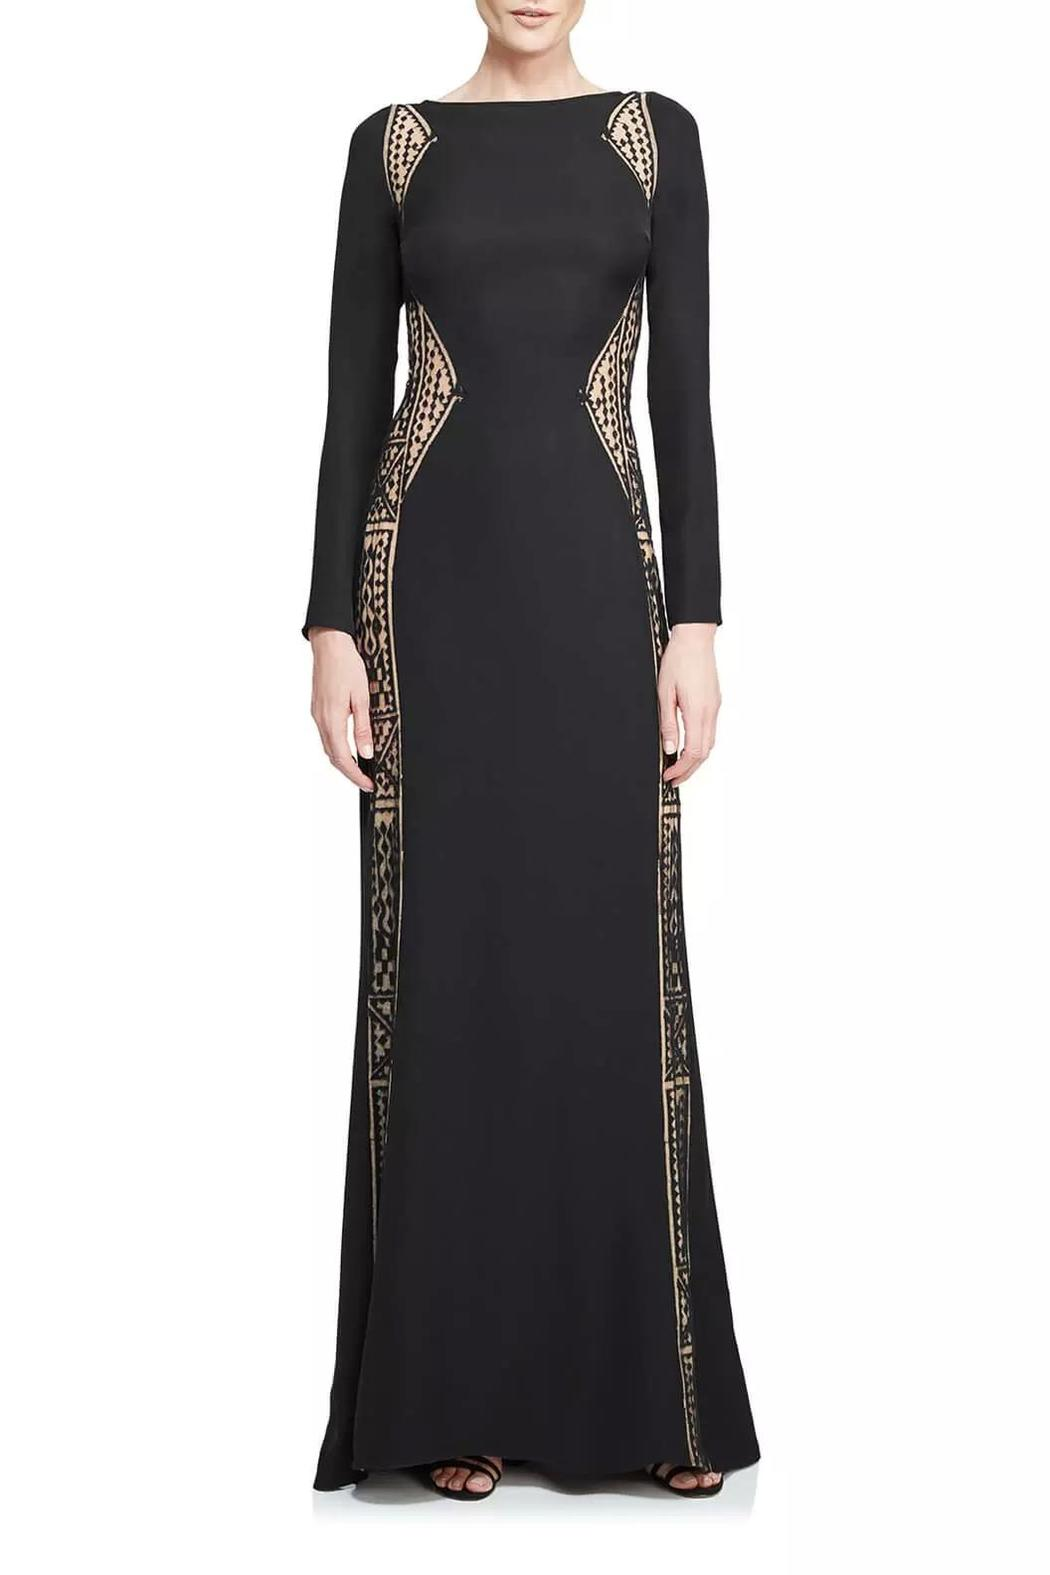 895986131107 Tadashi Shoji Long Sleeve Gown from New Jersey by District 5 ...